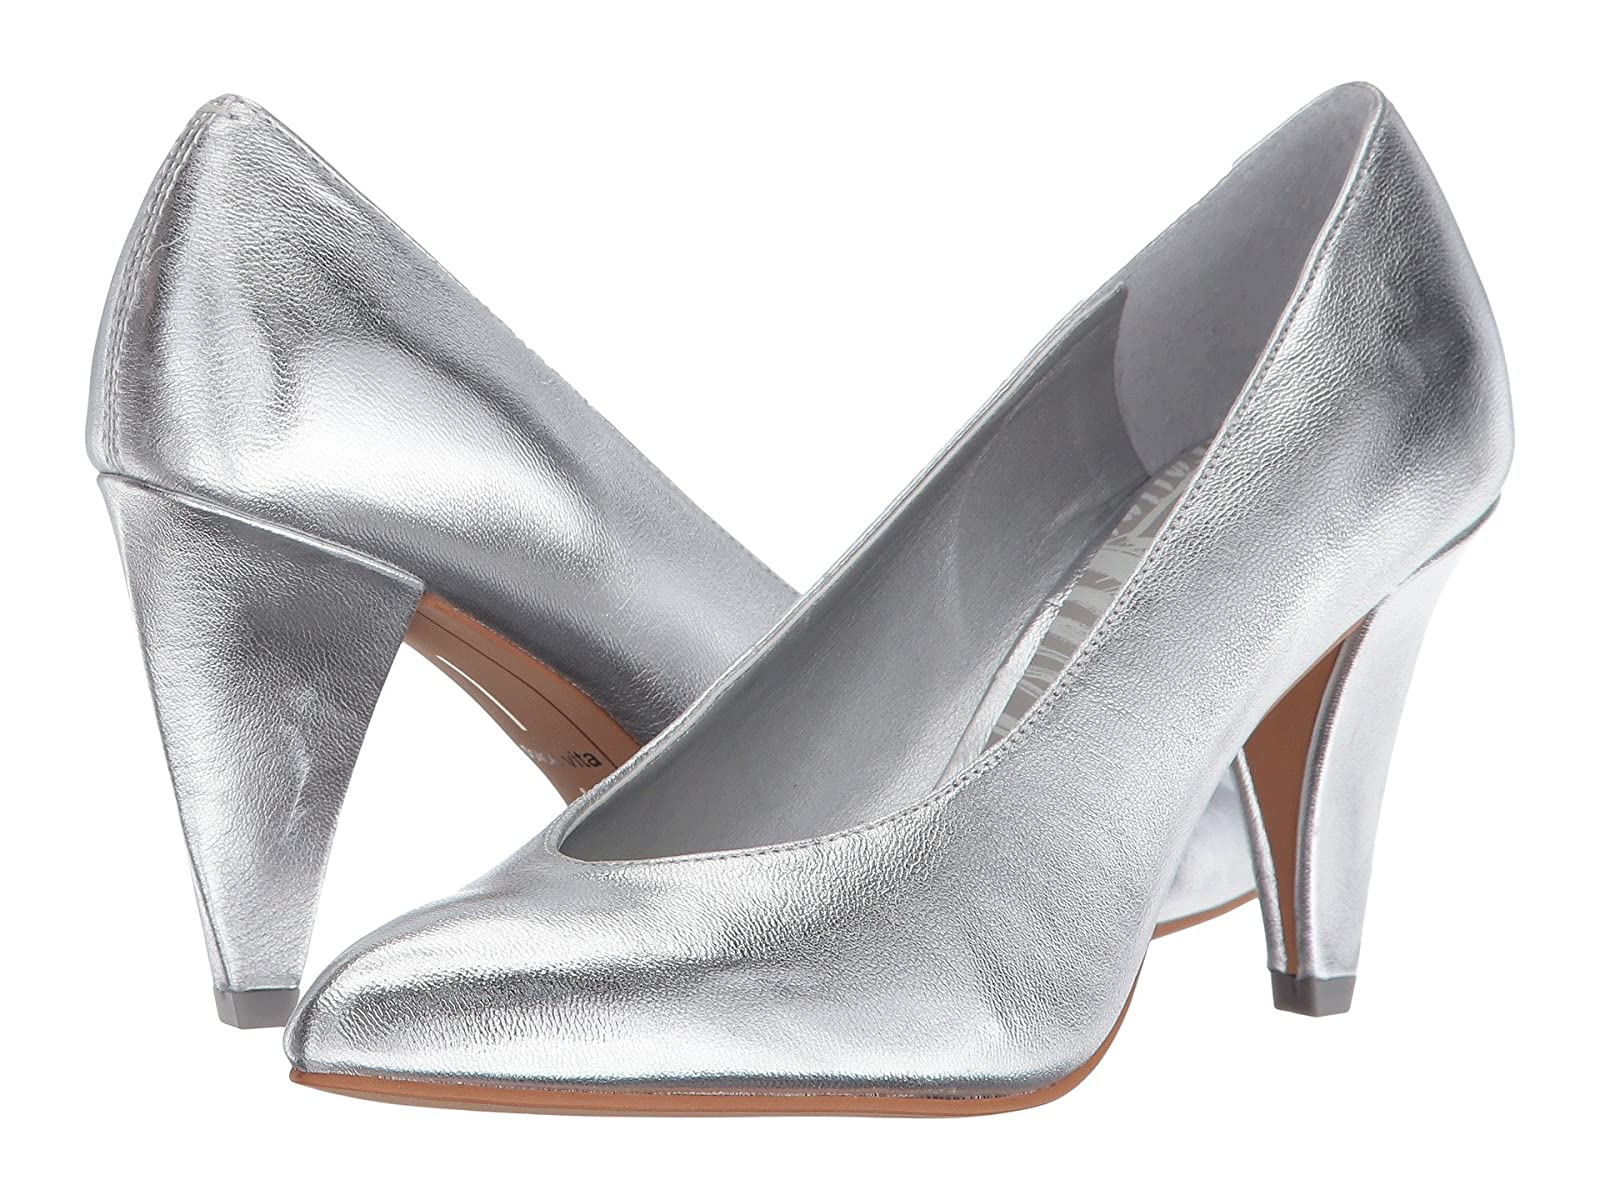 Dolce Vita LuellaCheap and distinctive eye-catching shoes